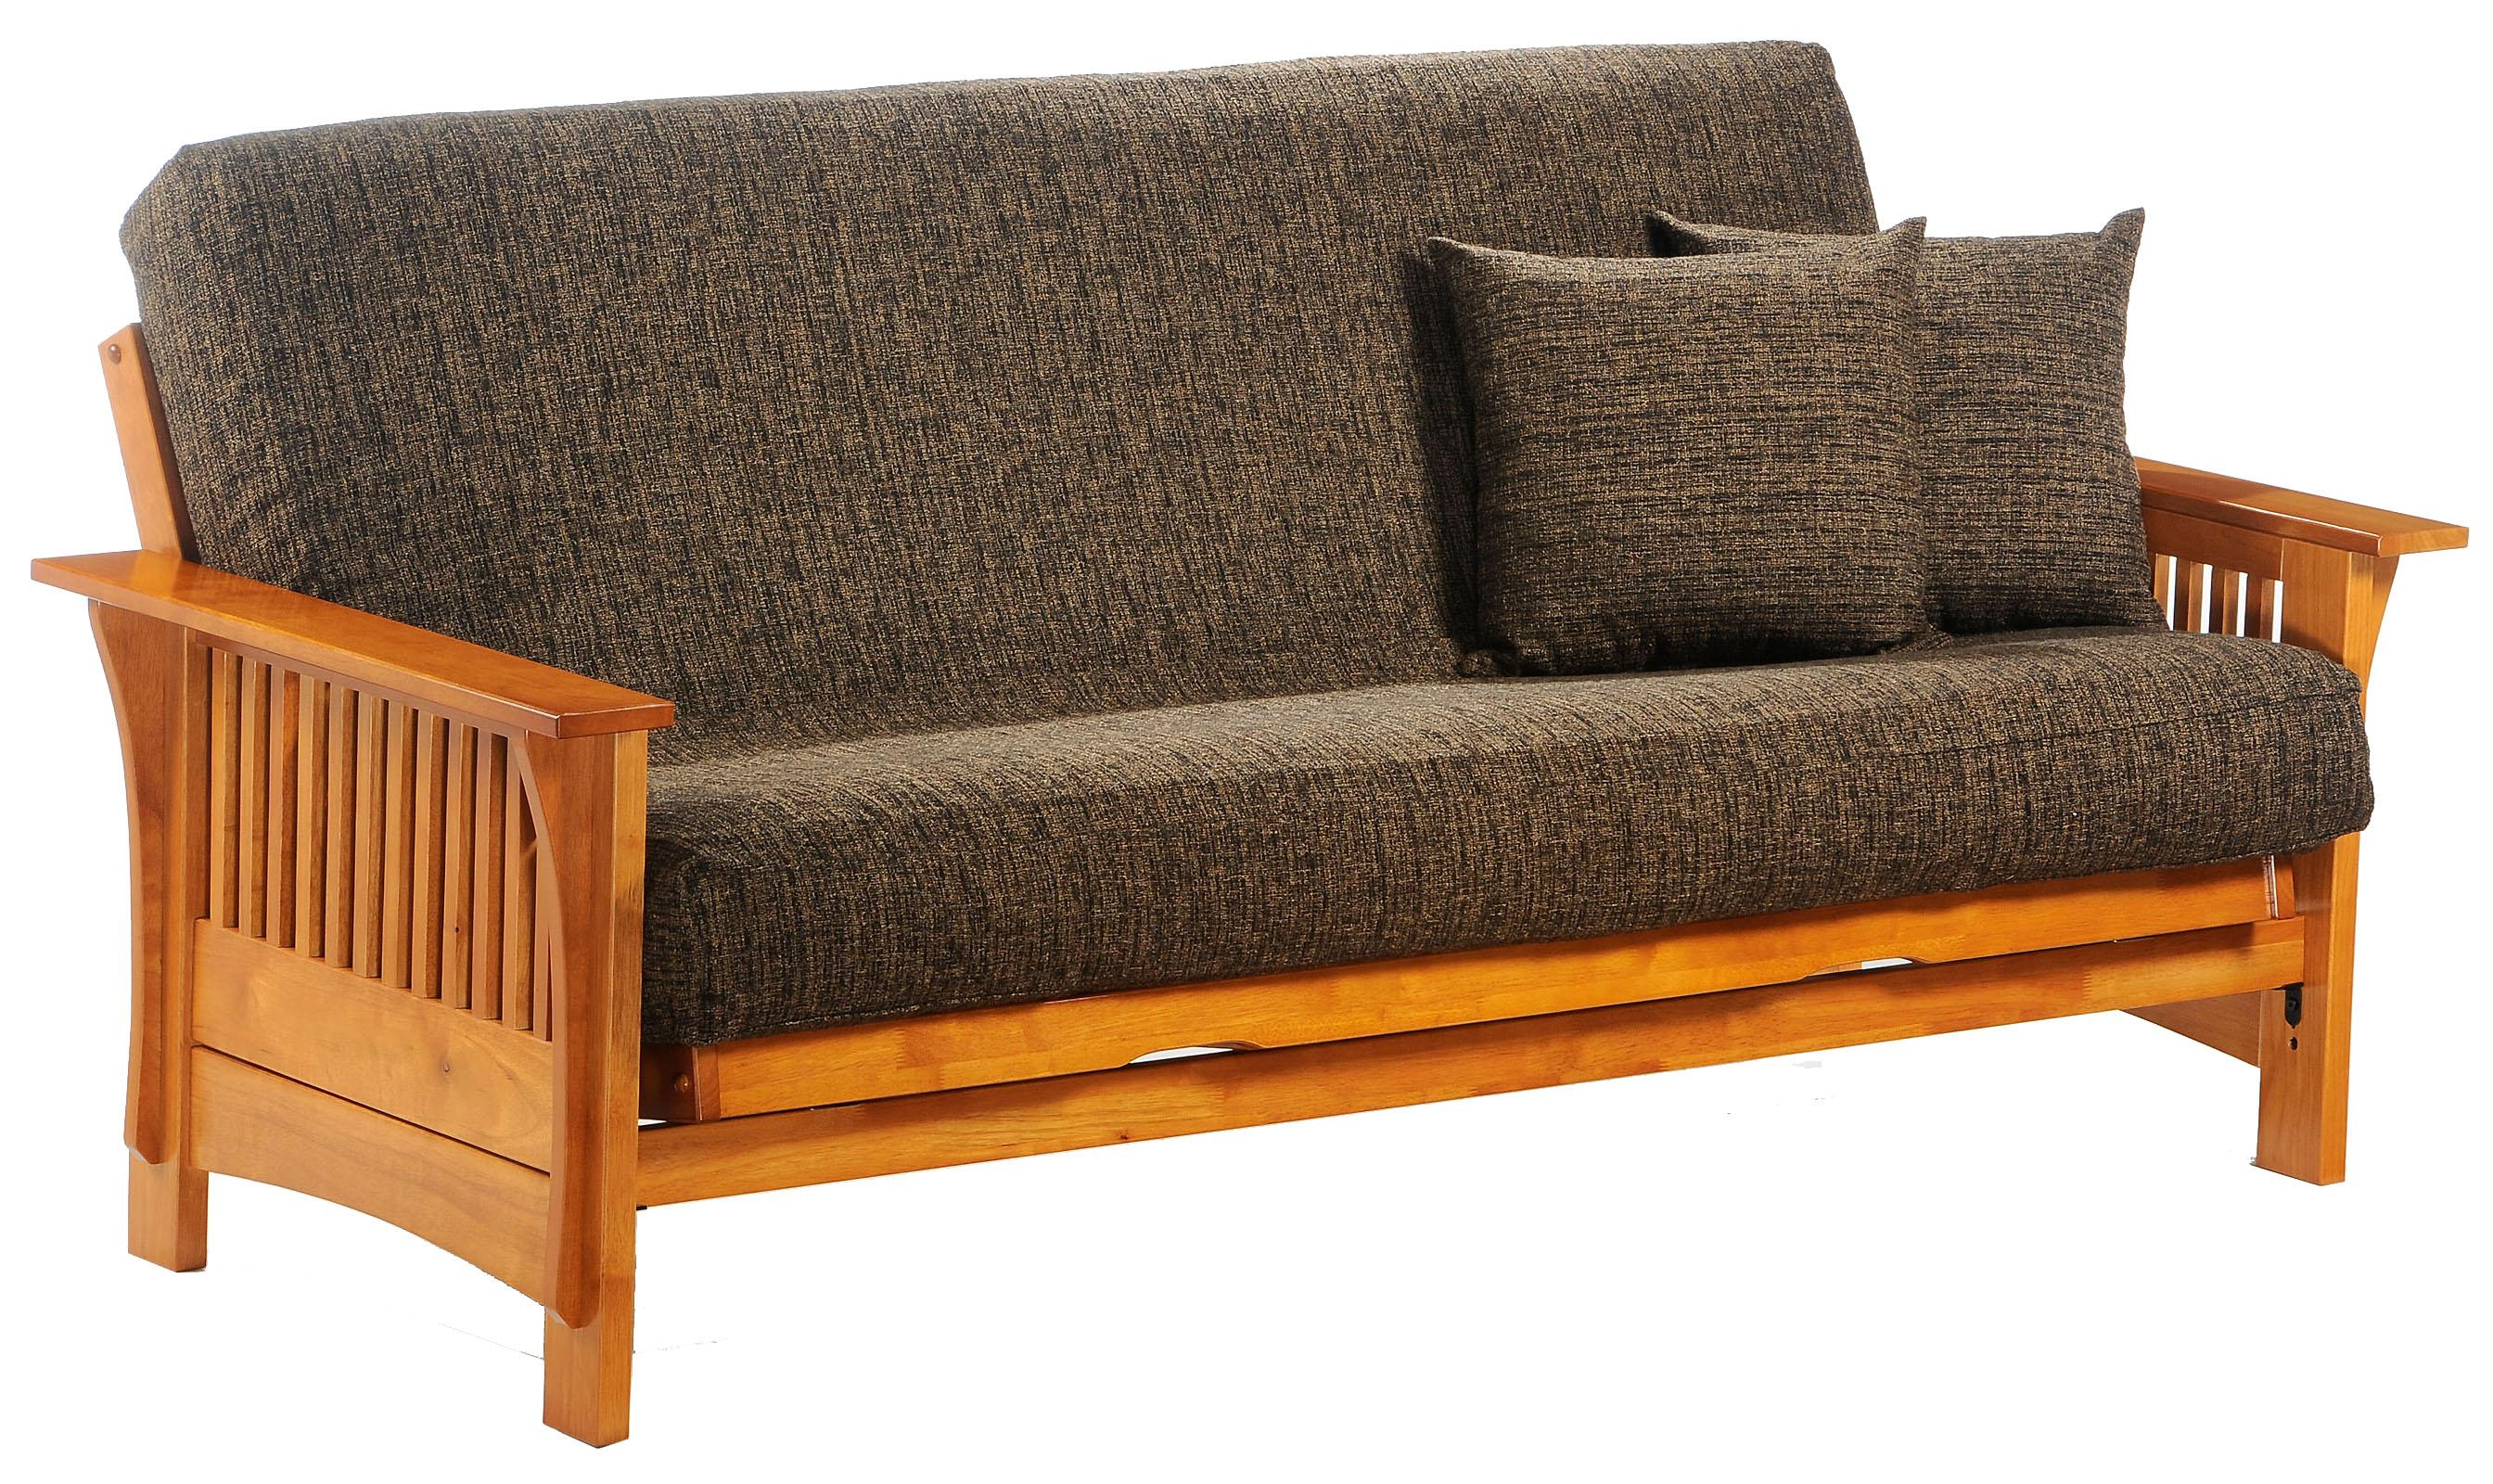 Autumn Honey Oak Queen Size Futon by Night & Day Furniture at Furniture and ApplianceMart